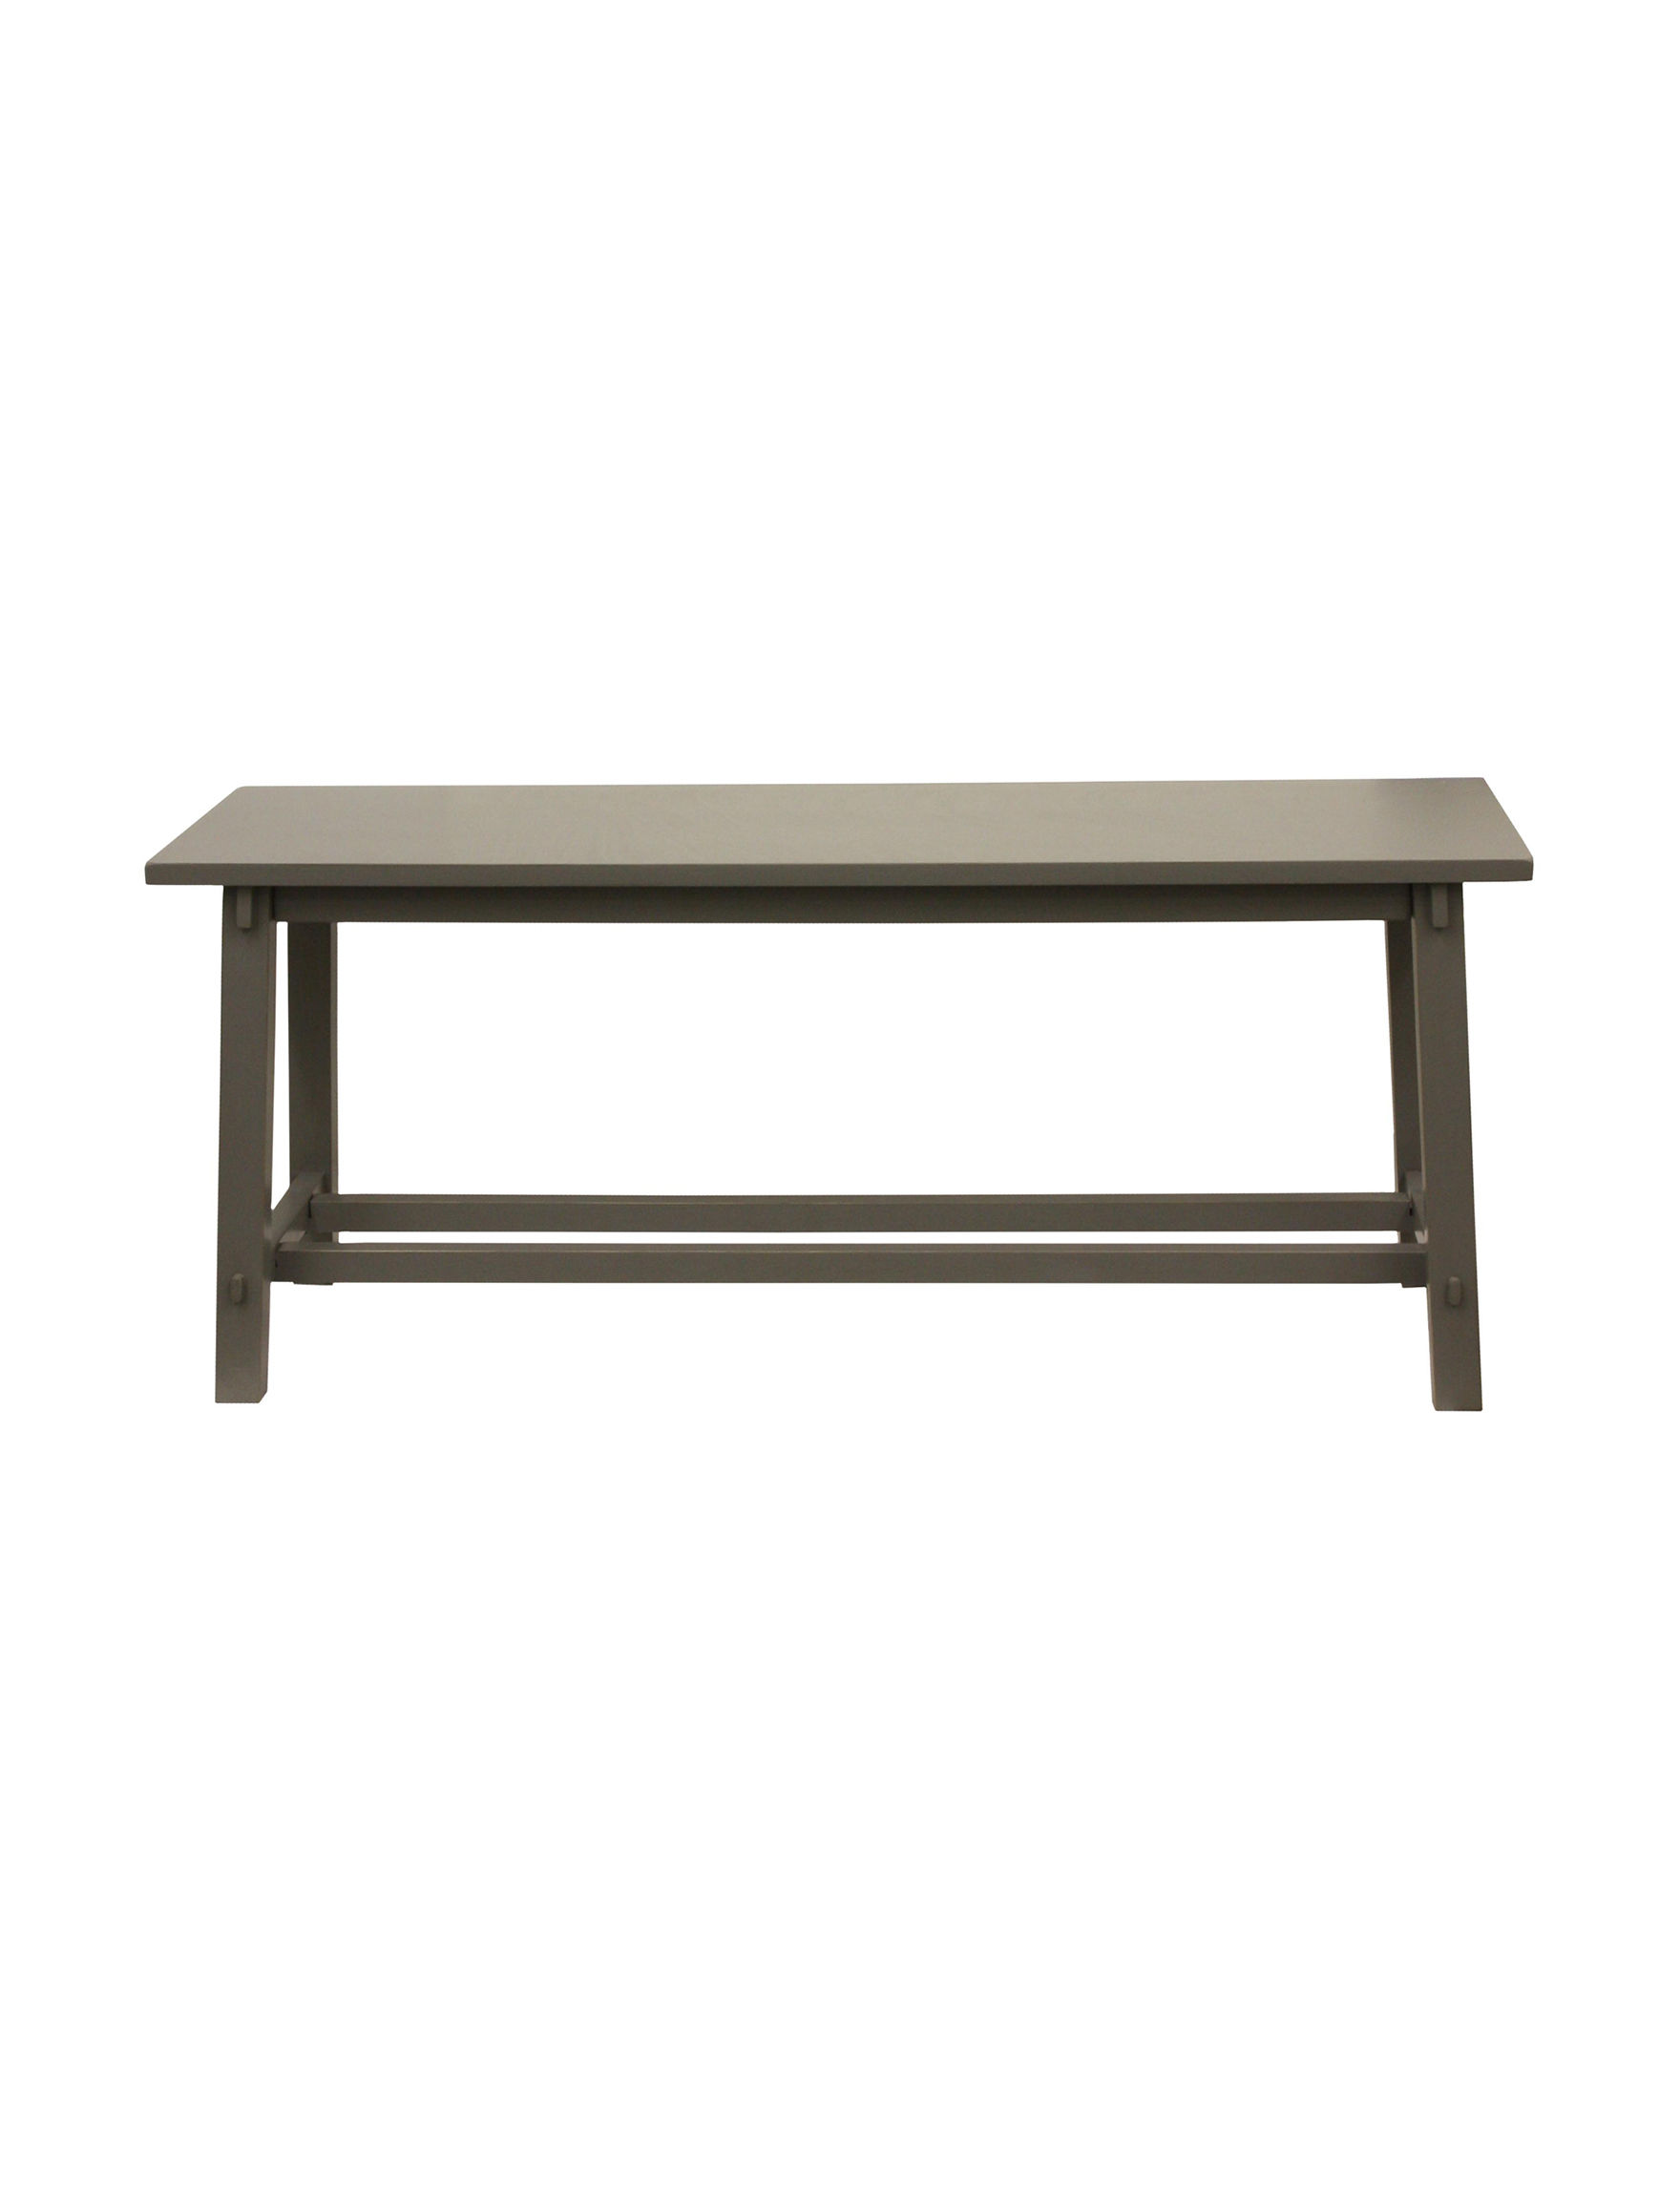 Decor Therapy Grey Ottomans & Benches Bedroom Furniture Entryway Furniture Living Room Furniture